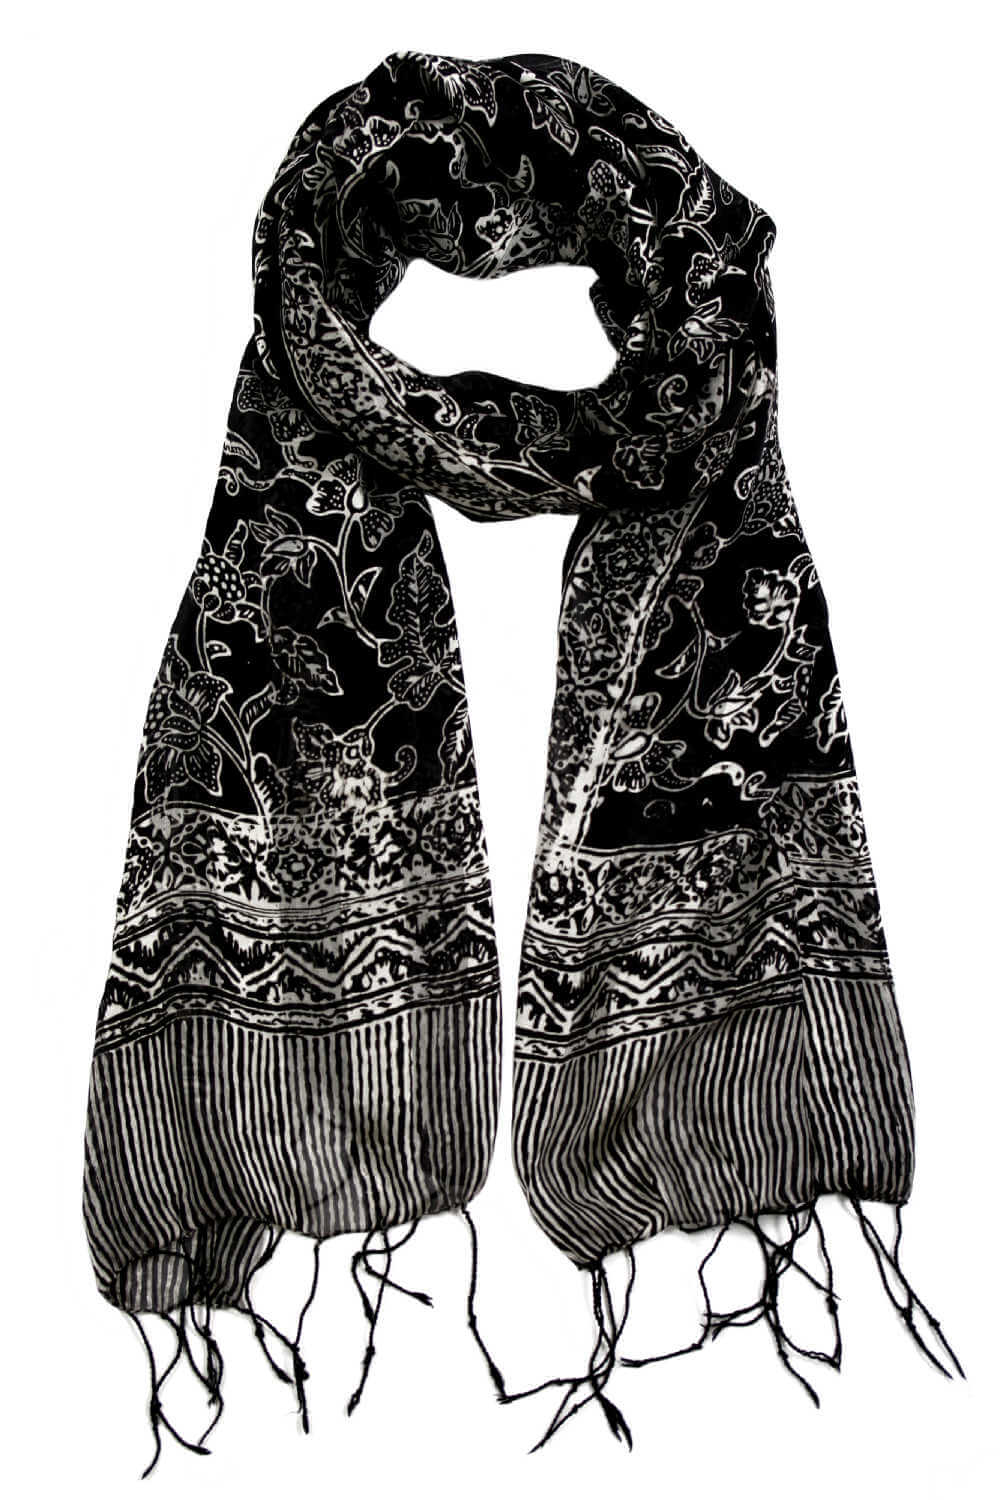 silk-scarf-black-white-floral-design